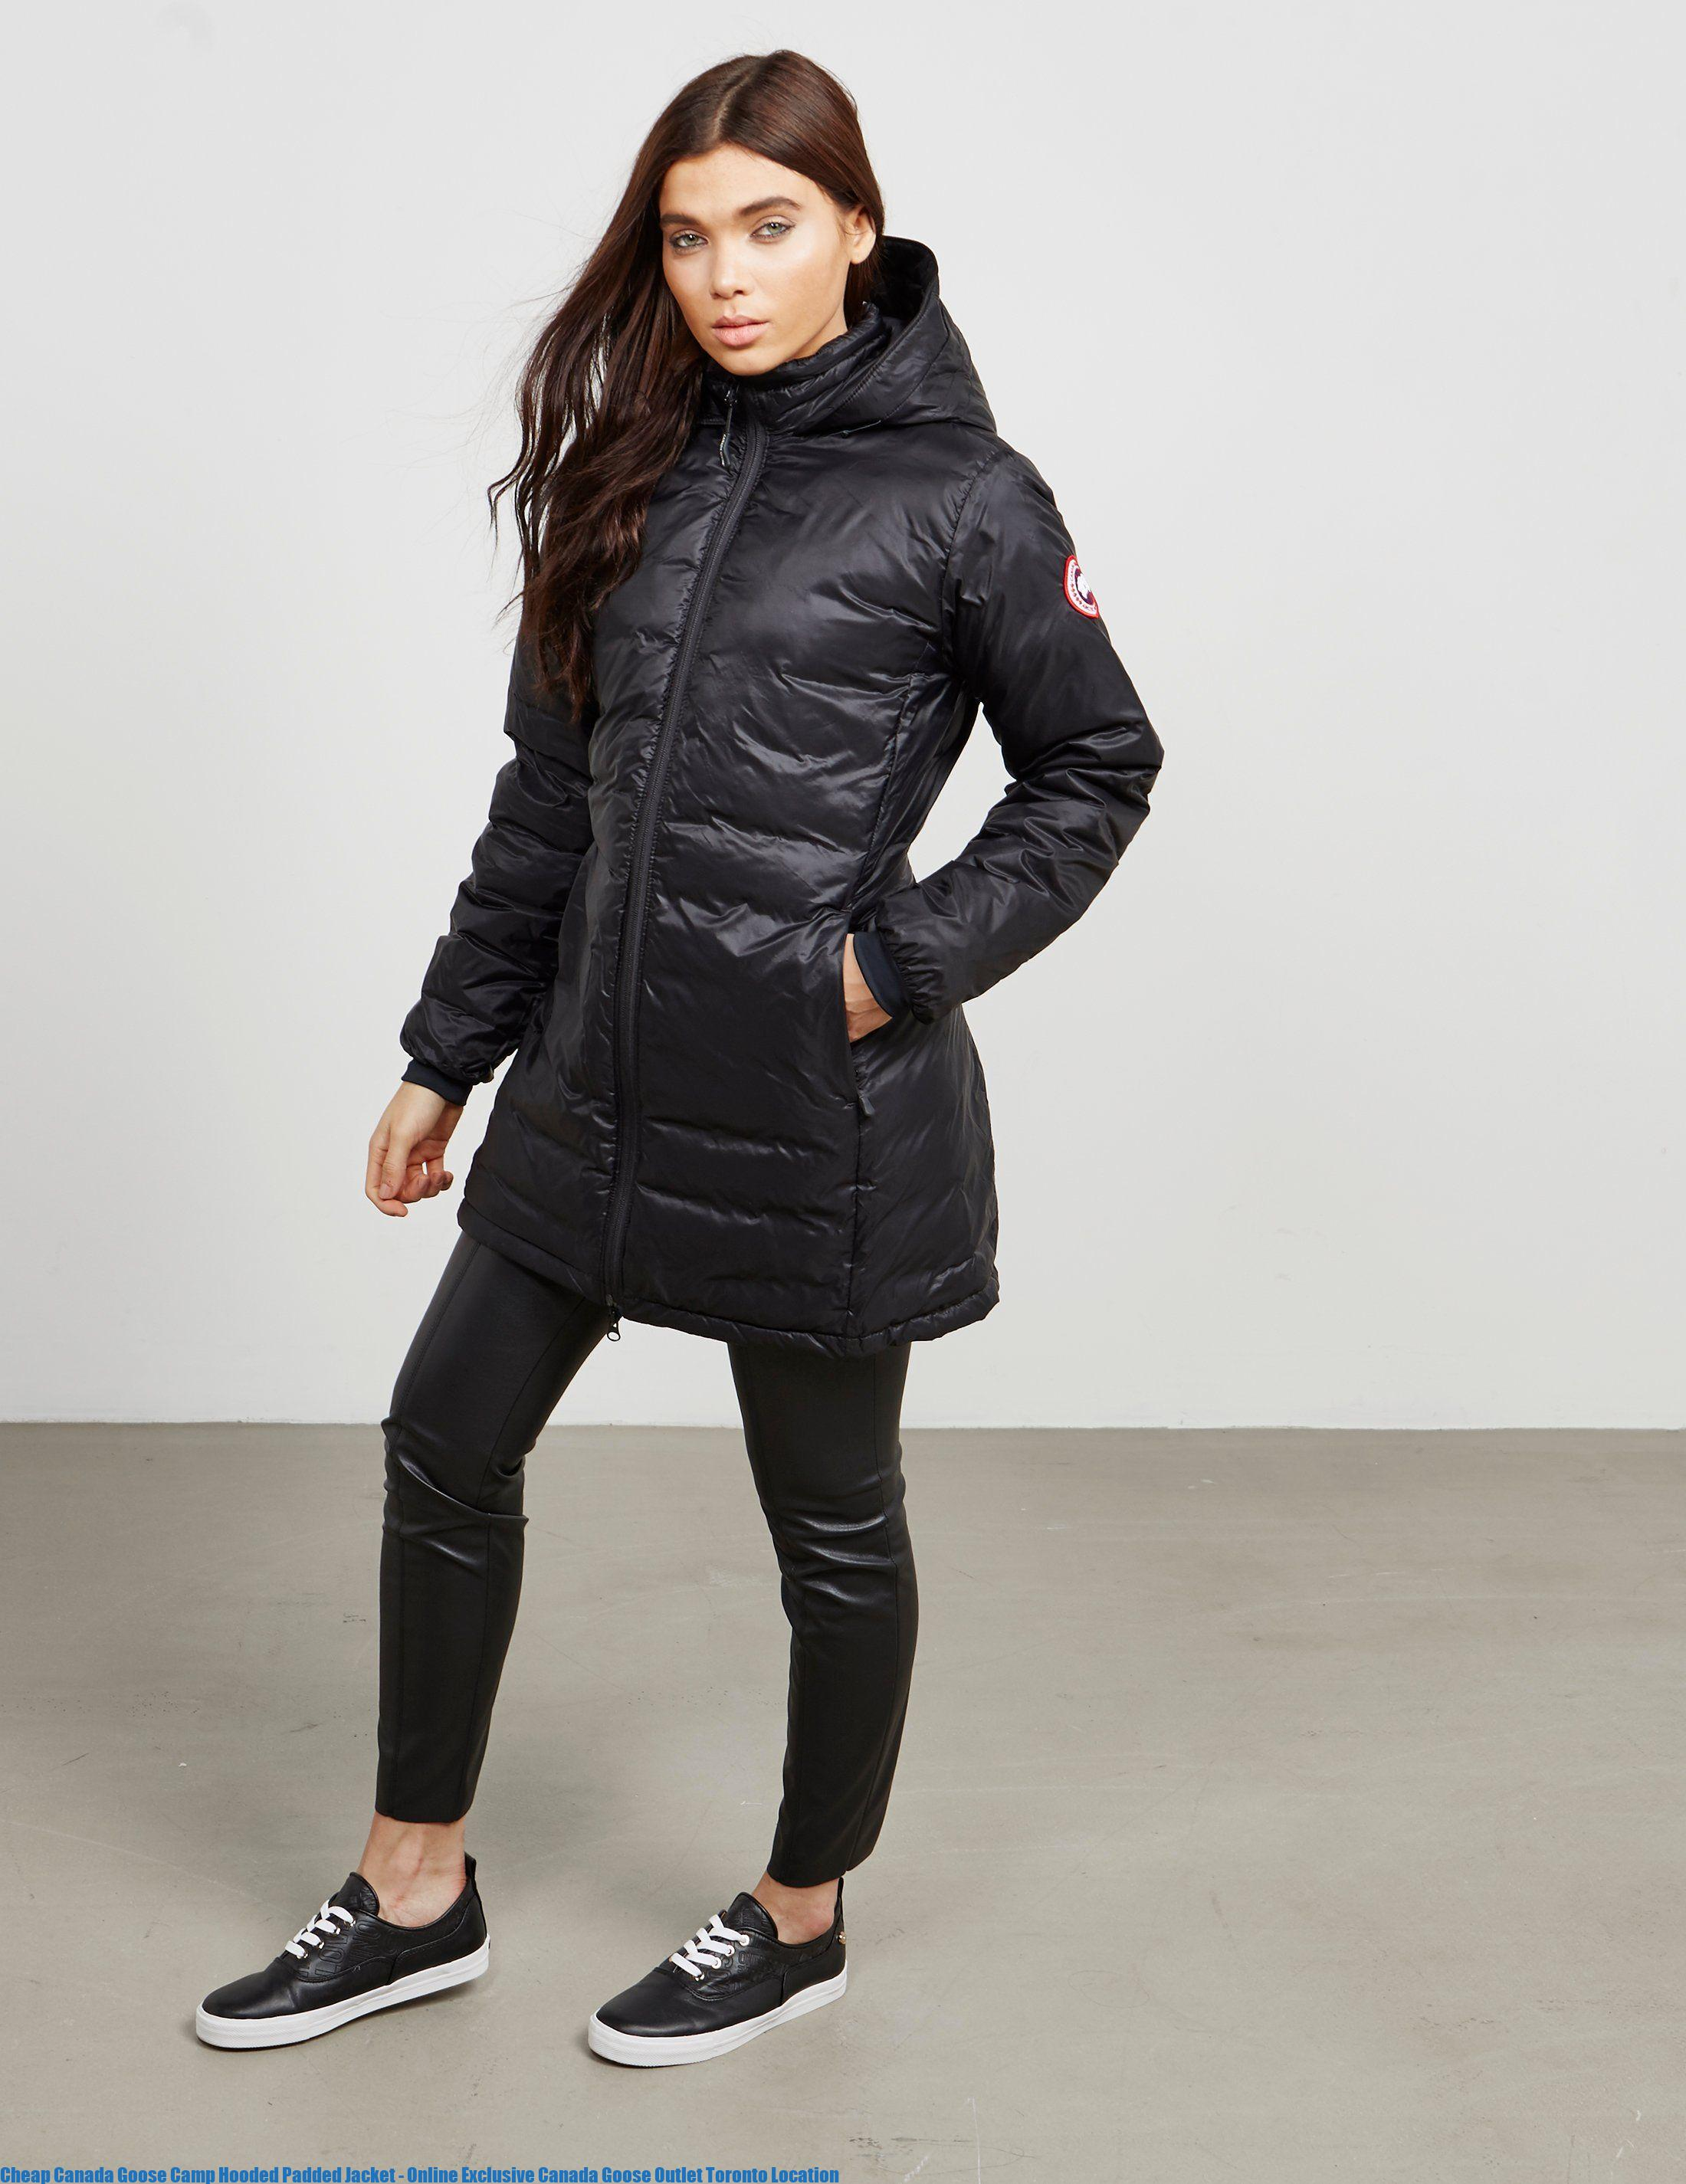 8271c0d90b6 Cheap Canada Goose Camp Hooded Padded Jacket – Online Exclusive Canada  Goose Outlet Toronto Location – Cheap Canada Goose Outlet Sale Clearances –  Up to 70% ...